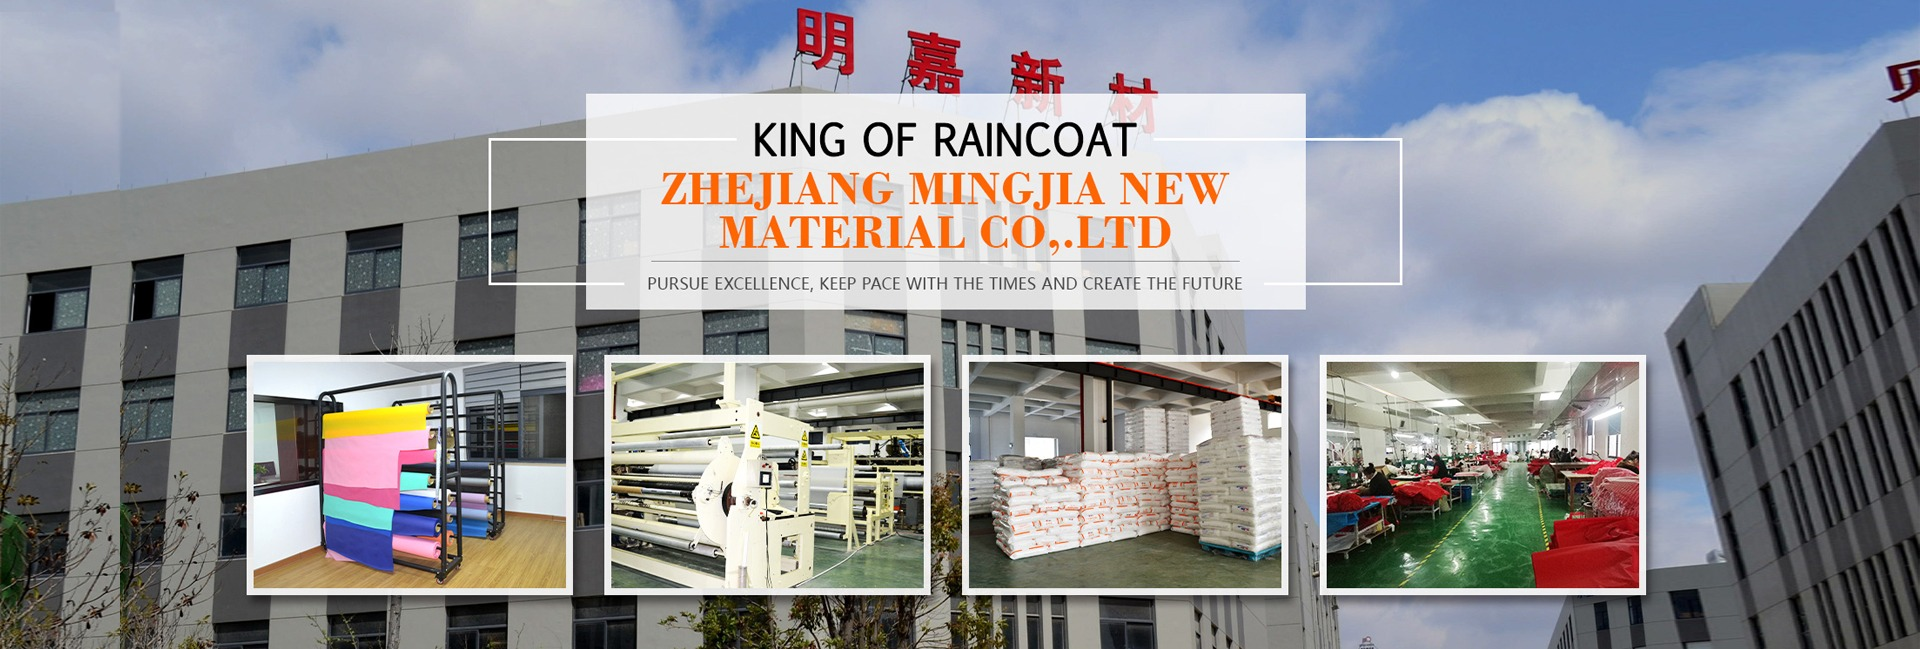 Yiwu Bianerli Plastic Co Ltd Raincoat Peva Film